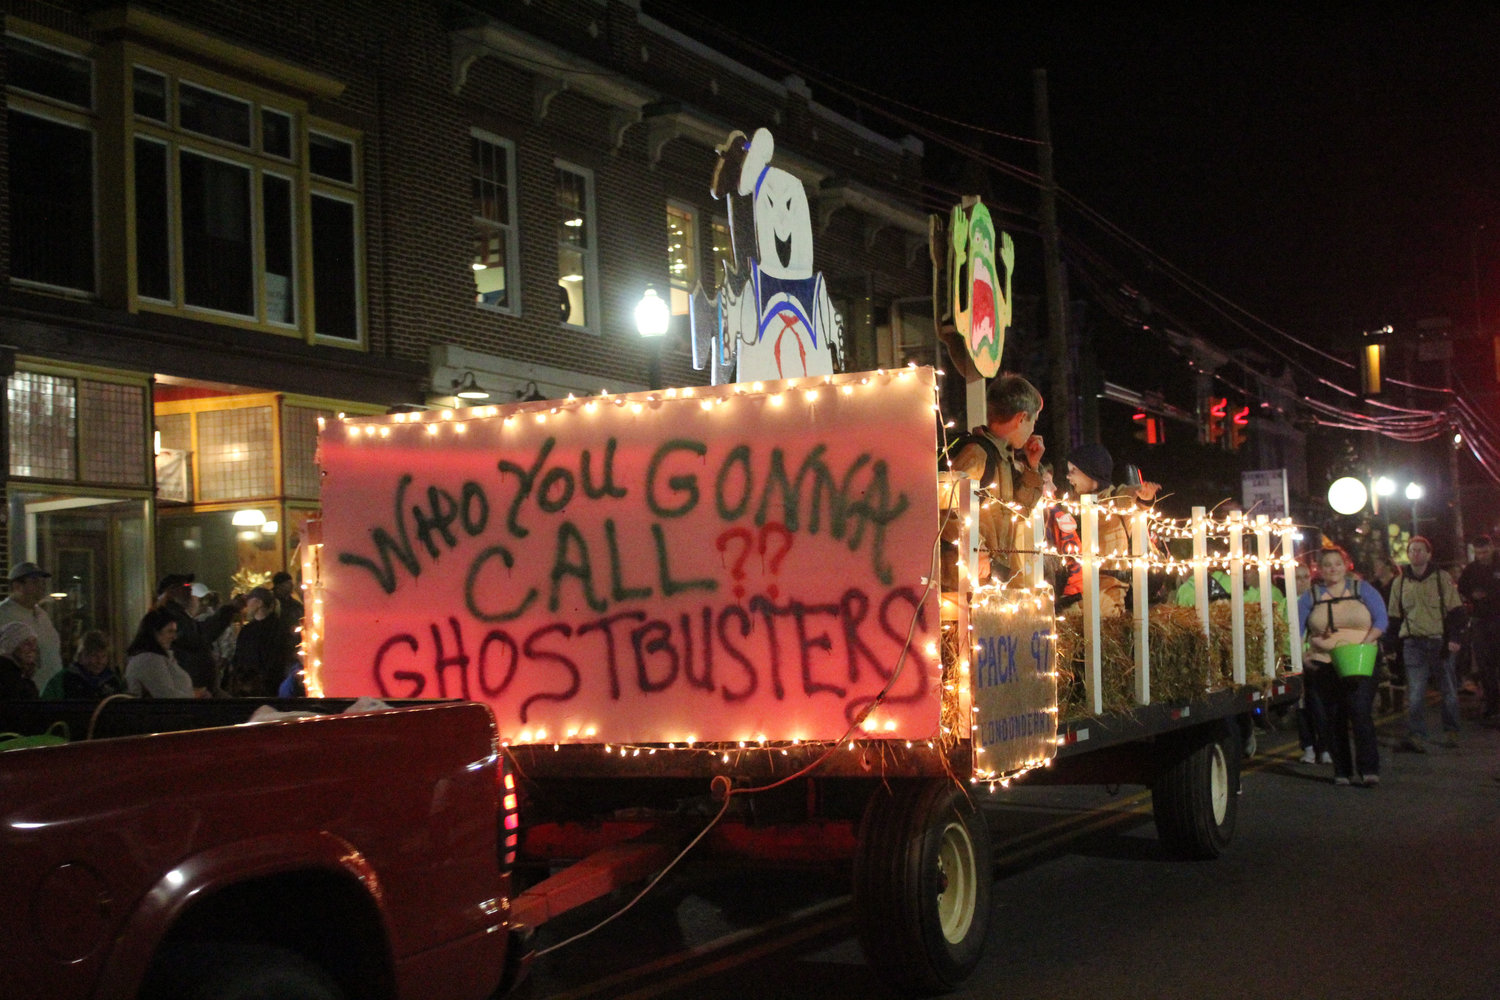 Boy Scout Pack 97 had a Ghostbusters-themed float in the Halloween parade on Oct. 16.